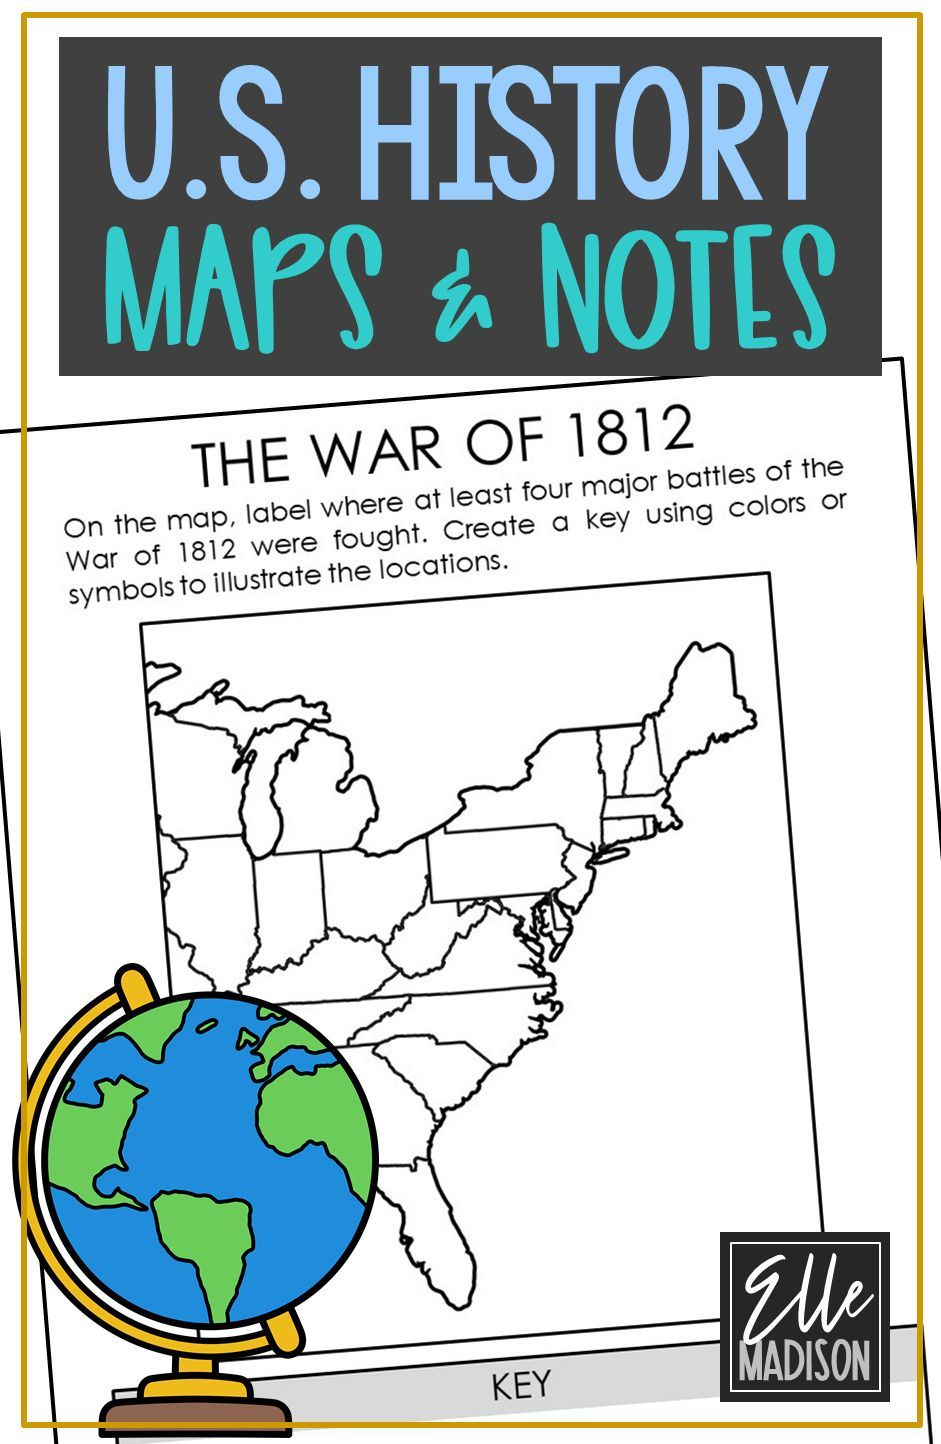 Social Studies Unit Study Us American History Worksheet And Maps Note Pages Social Studies Worksheets Social Studies Middle School Social Studies